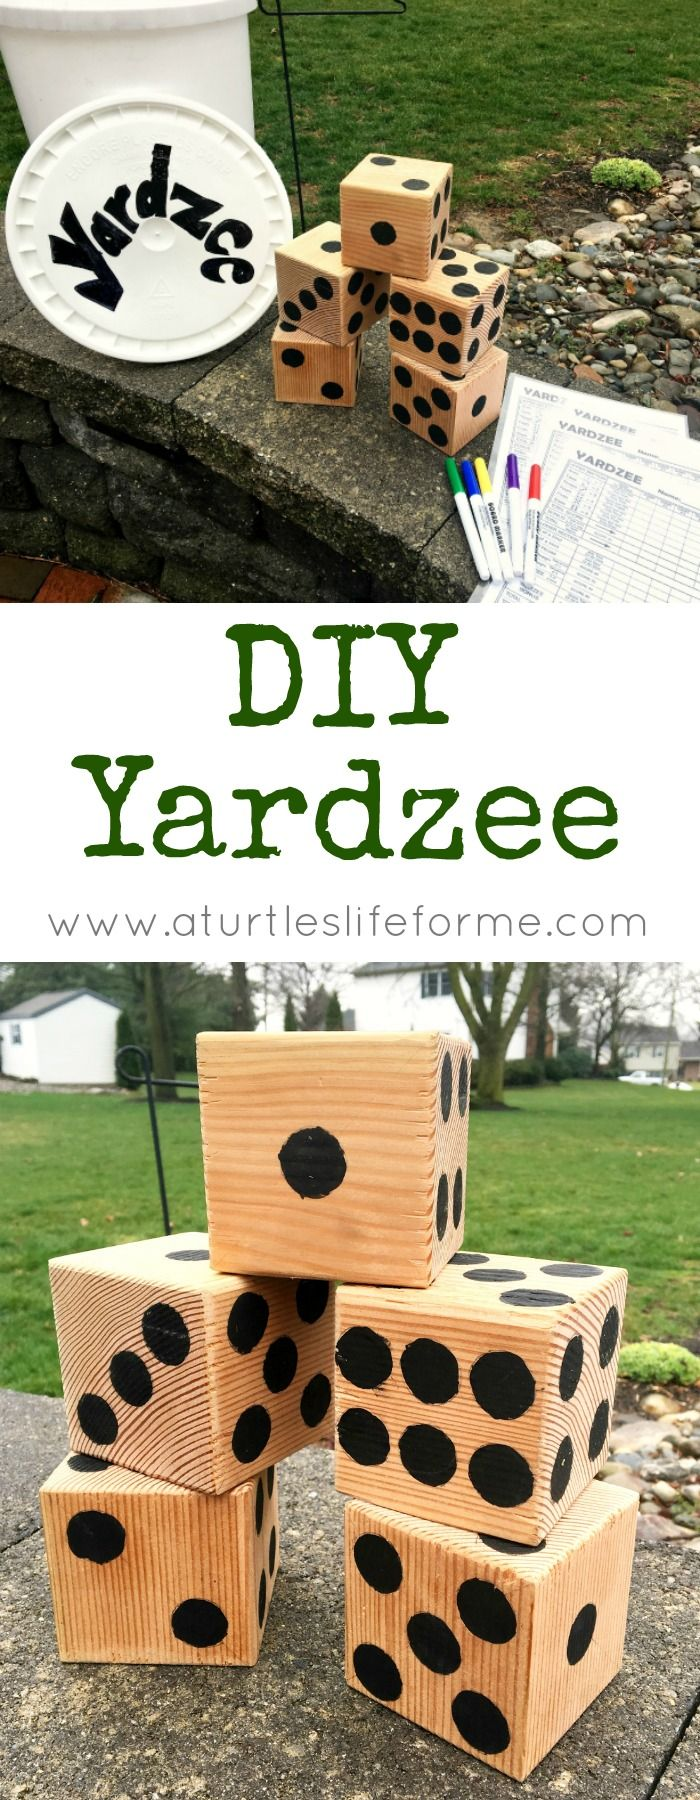 Do It Yourself Home Design: 17 Best Images About Everything For Kids On Pinterest